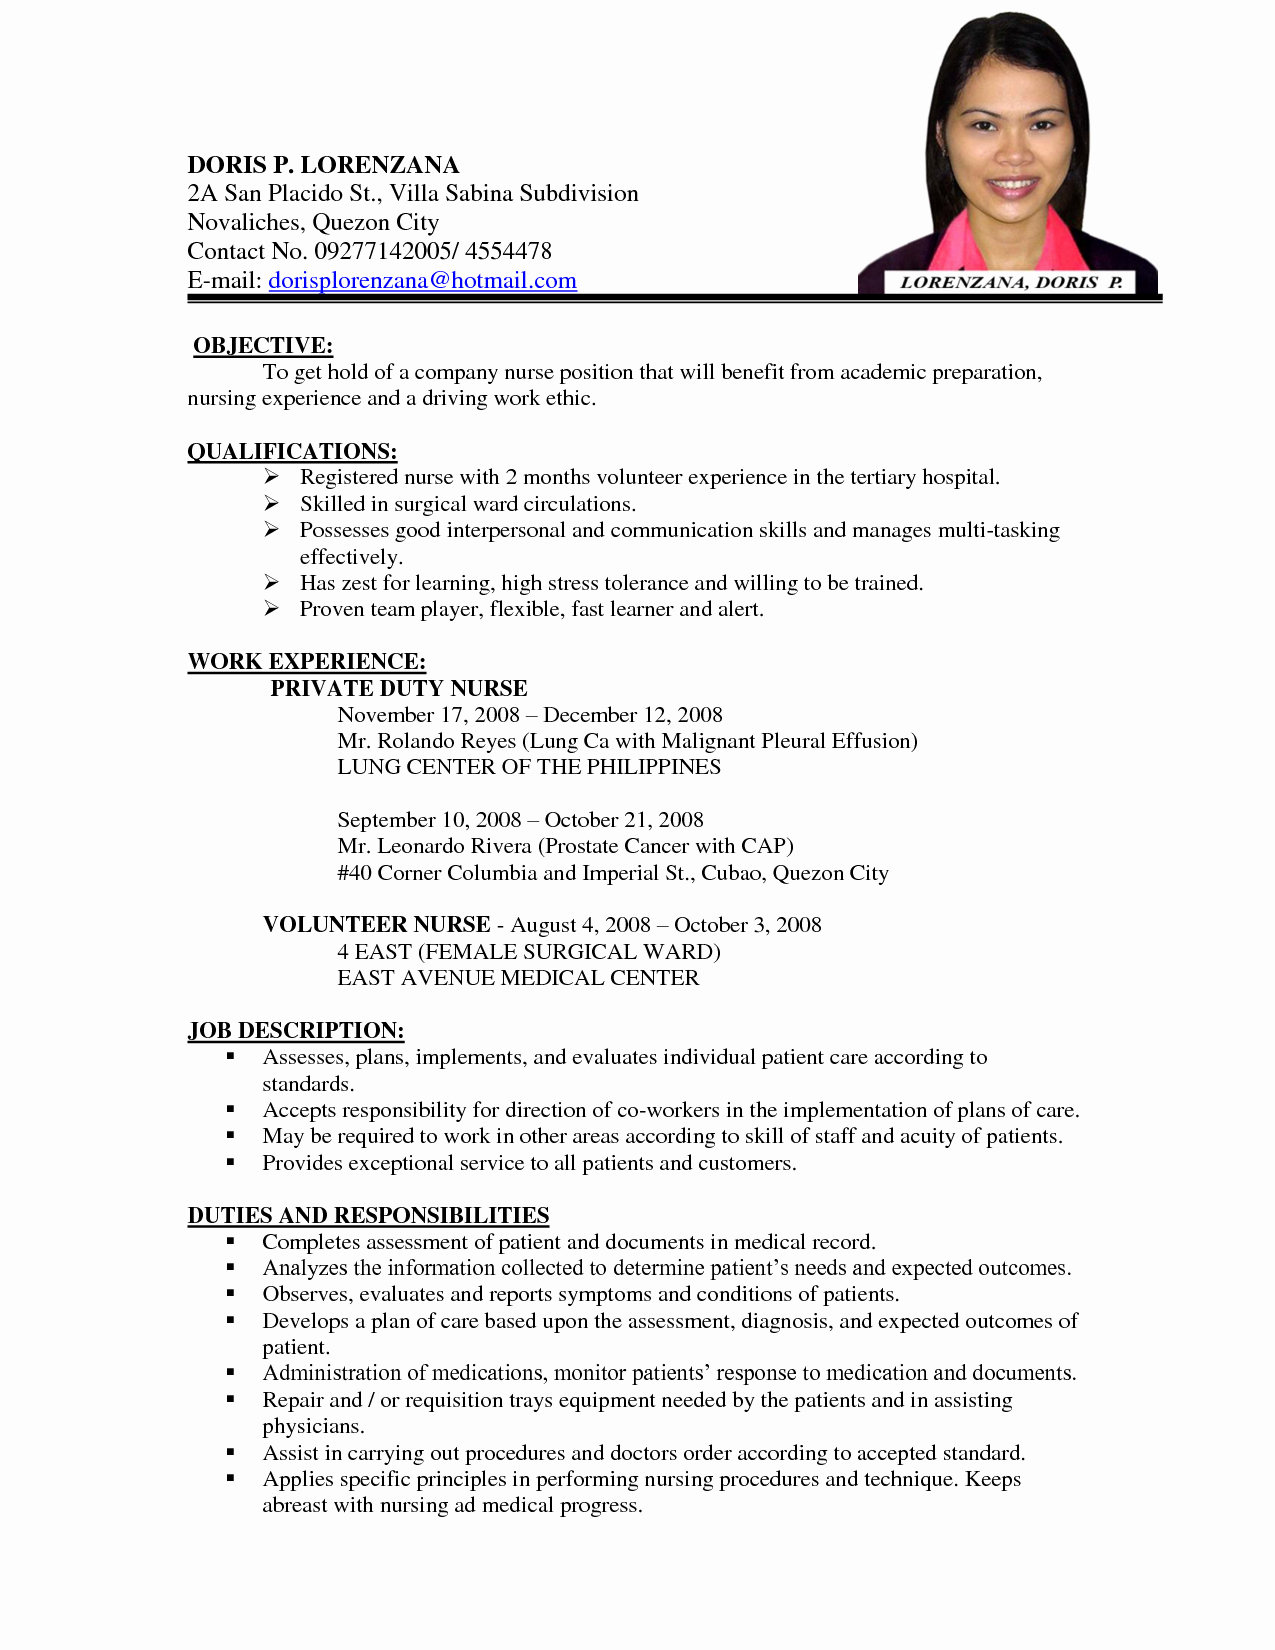 Curriculum Vitae for Nurses Fresh Nursing Curriculum Vitae Examples Google Search